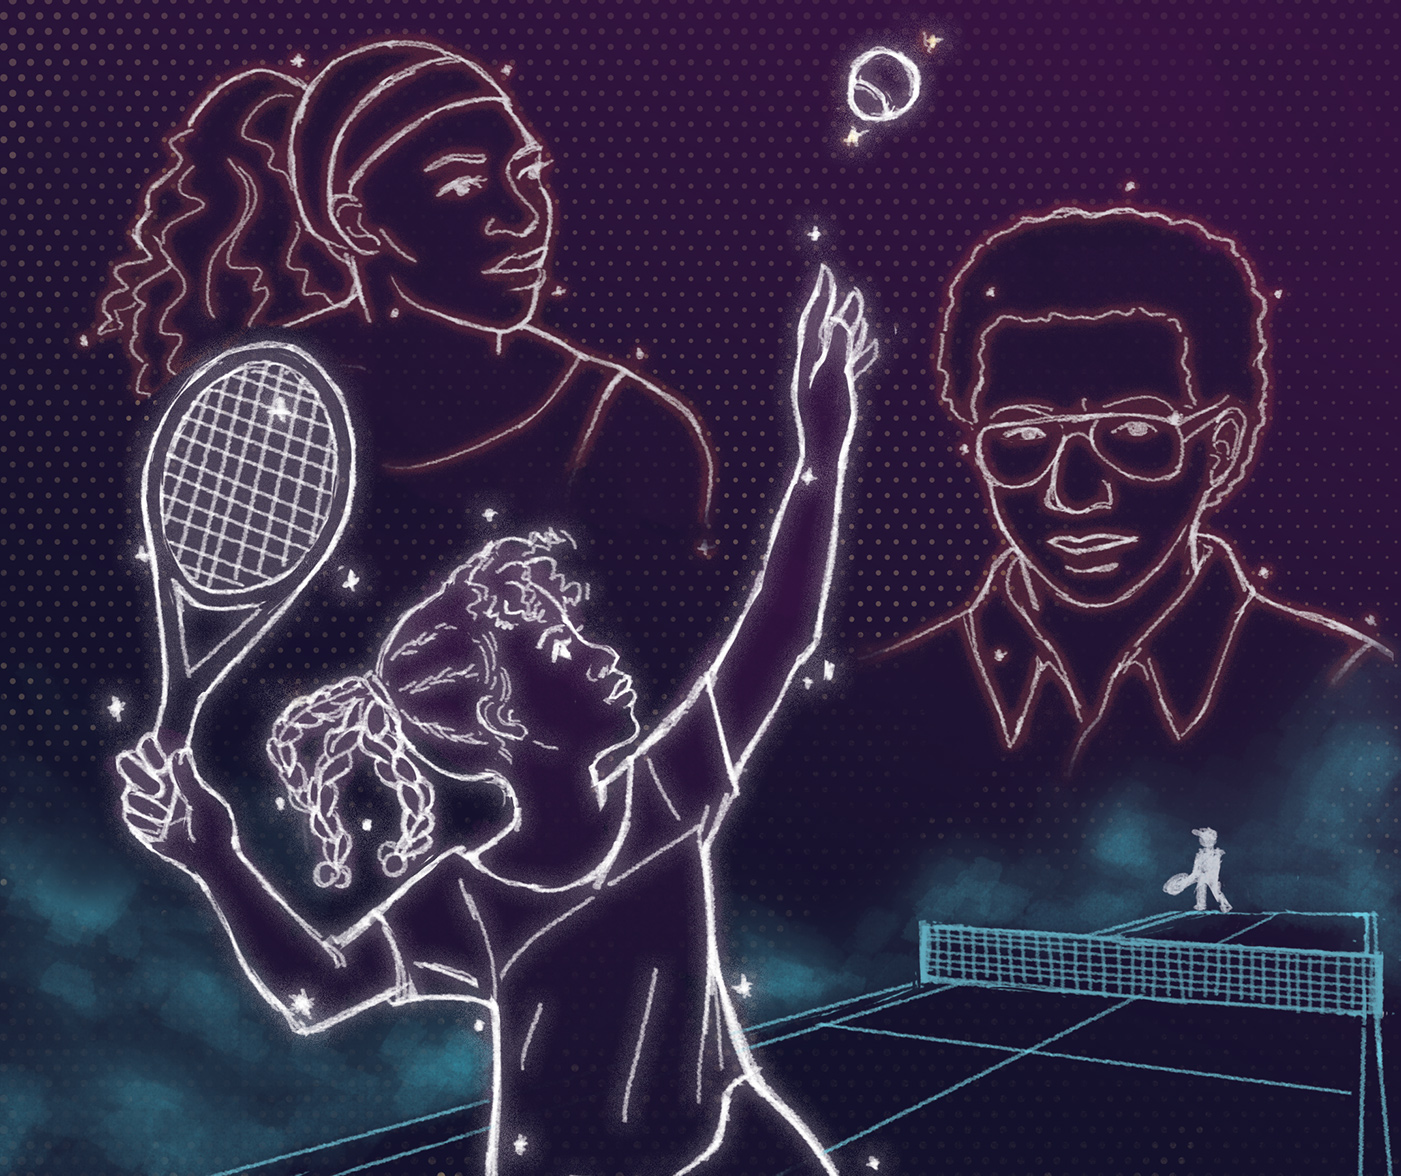 Illustration of a young, black girl stylized as a constellation, with Serena Williams and Artur Ashe in the background.